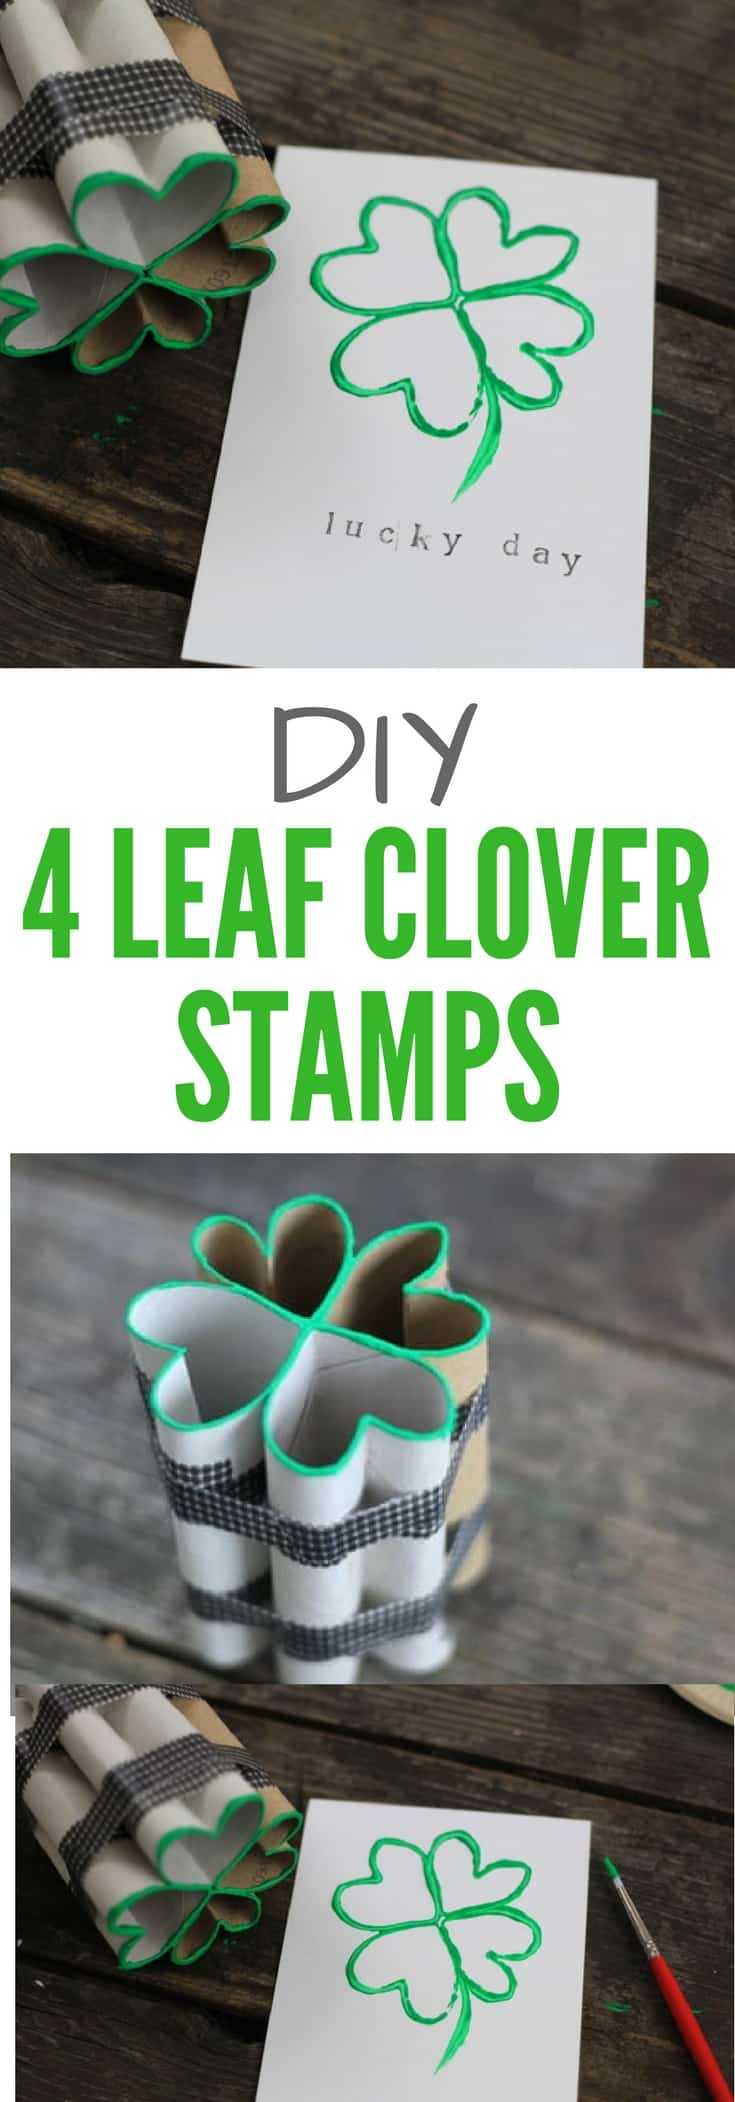 Image of DIY 4 leaf clover stamps from toilet paper rolls